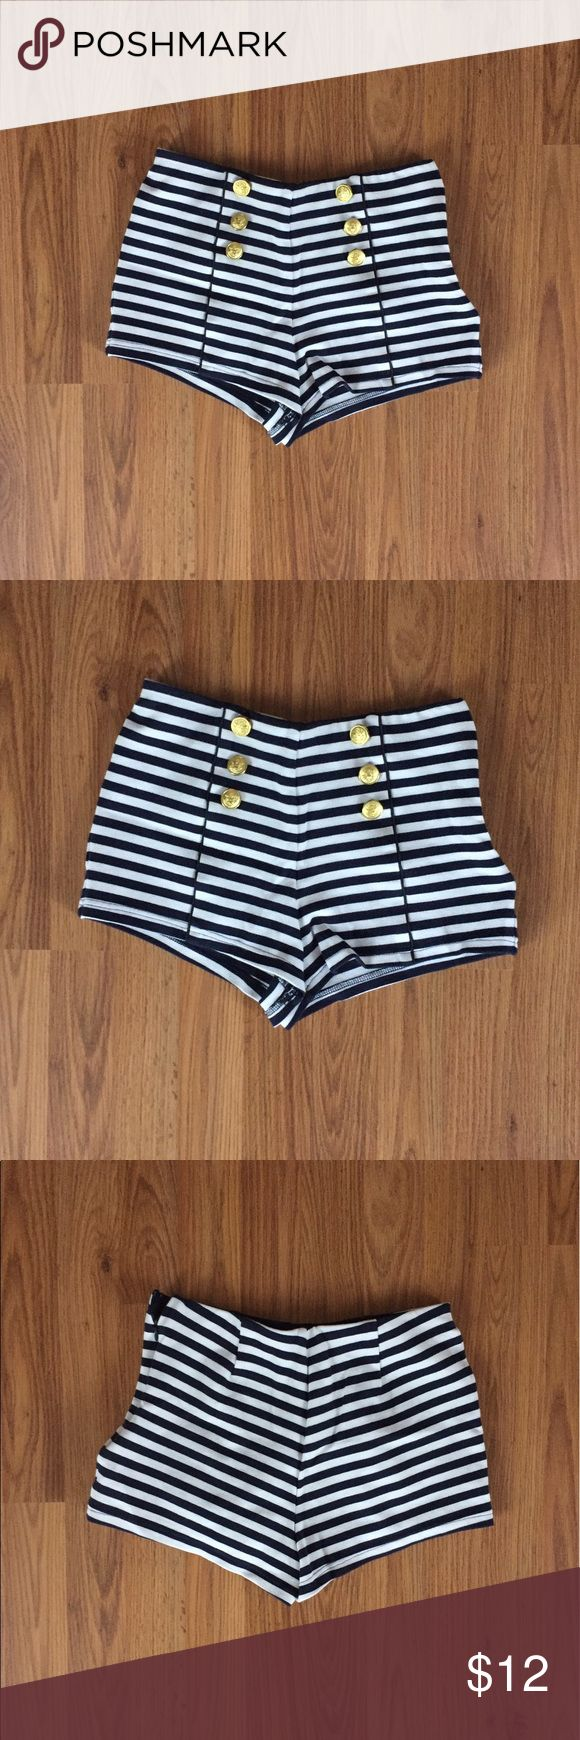 Striped nautical shorts with gold buttons These little sailor shorts have cute gold accent buttons and a side zipper. The waist is elasticized and the shorts have some stretch to them for a comfy fit. They are a Medium but I would size down as they fit more like a small. Forever 21 Shorts